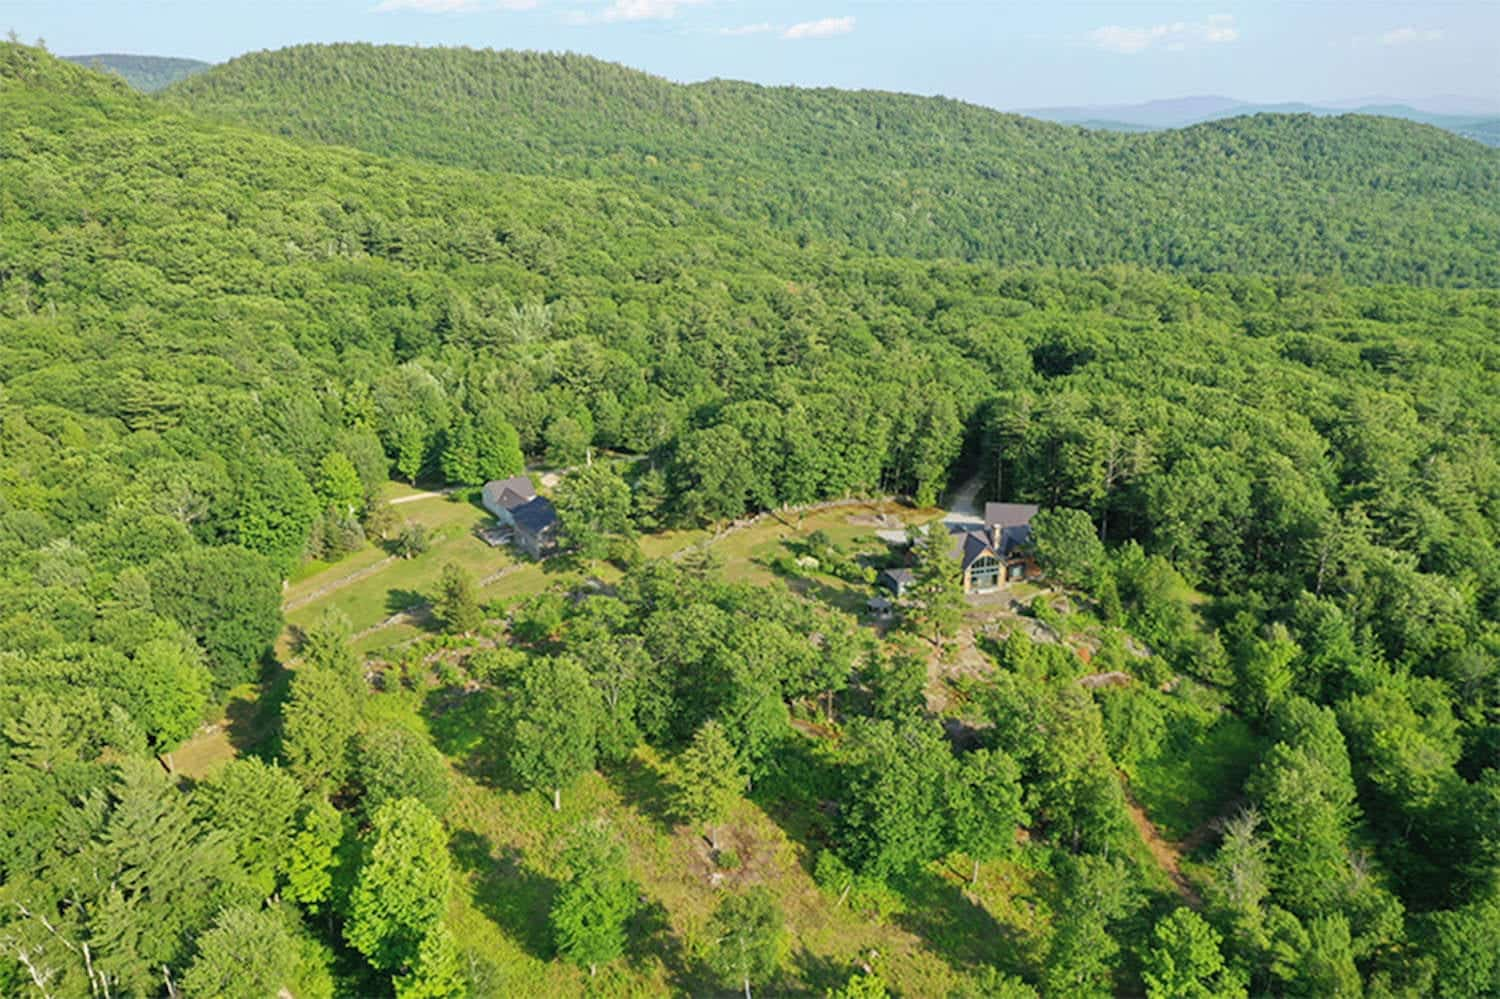 Drone footage shows Ghislaine Maxwell's secluded hideaway in NH